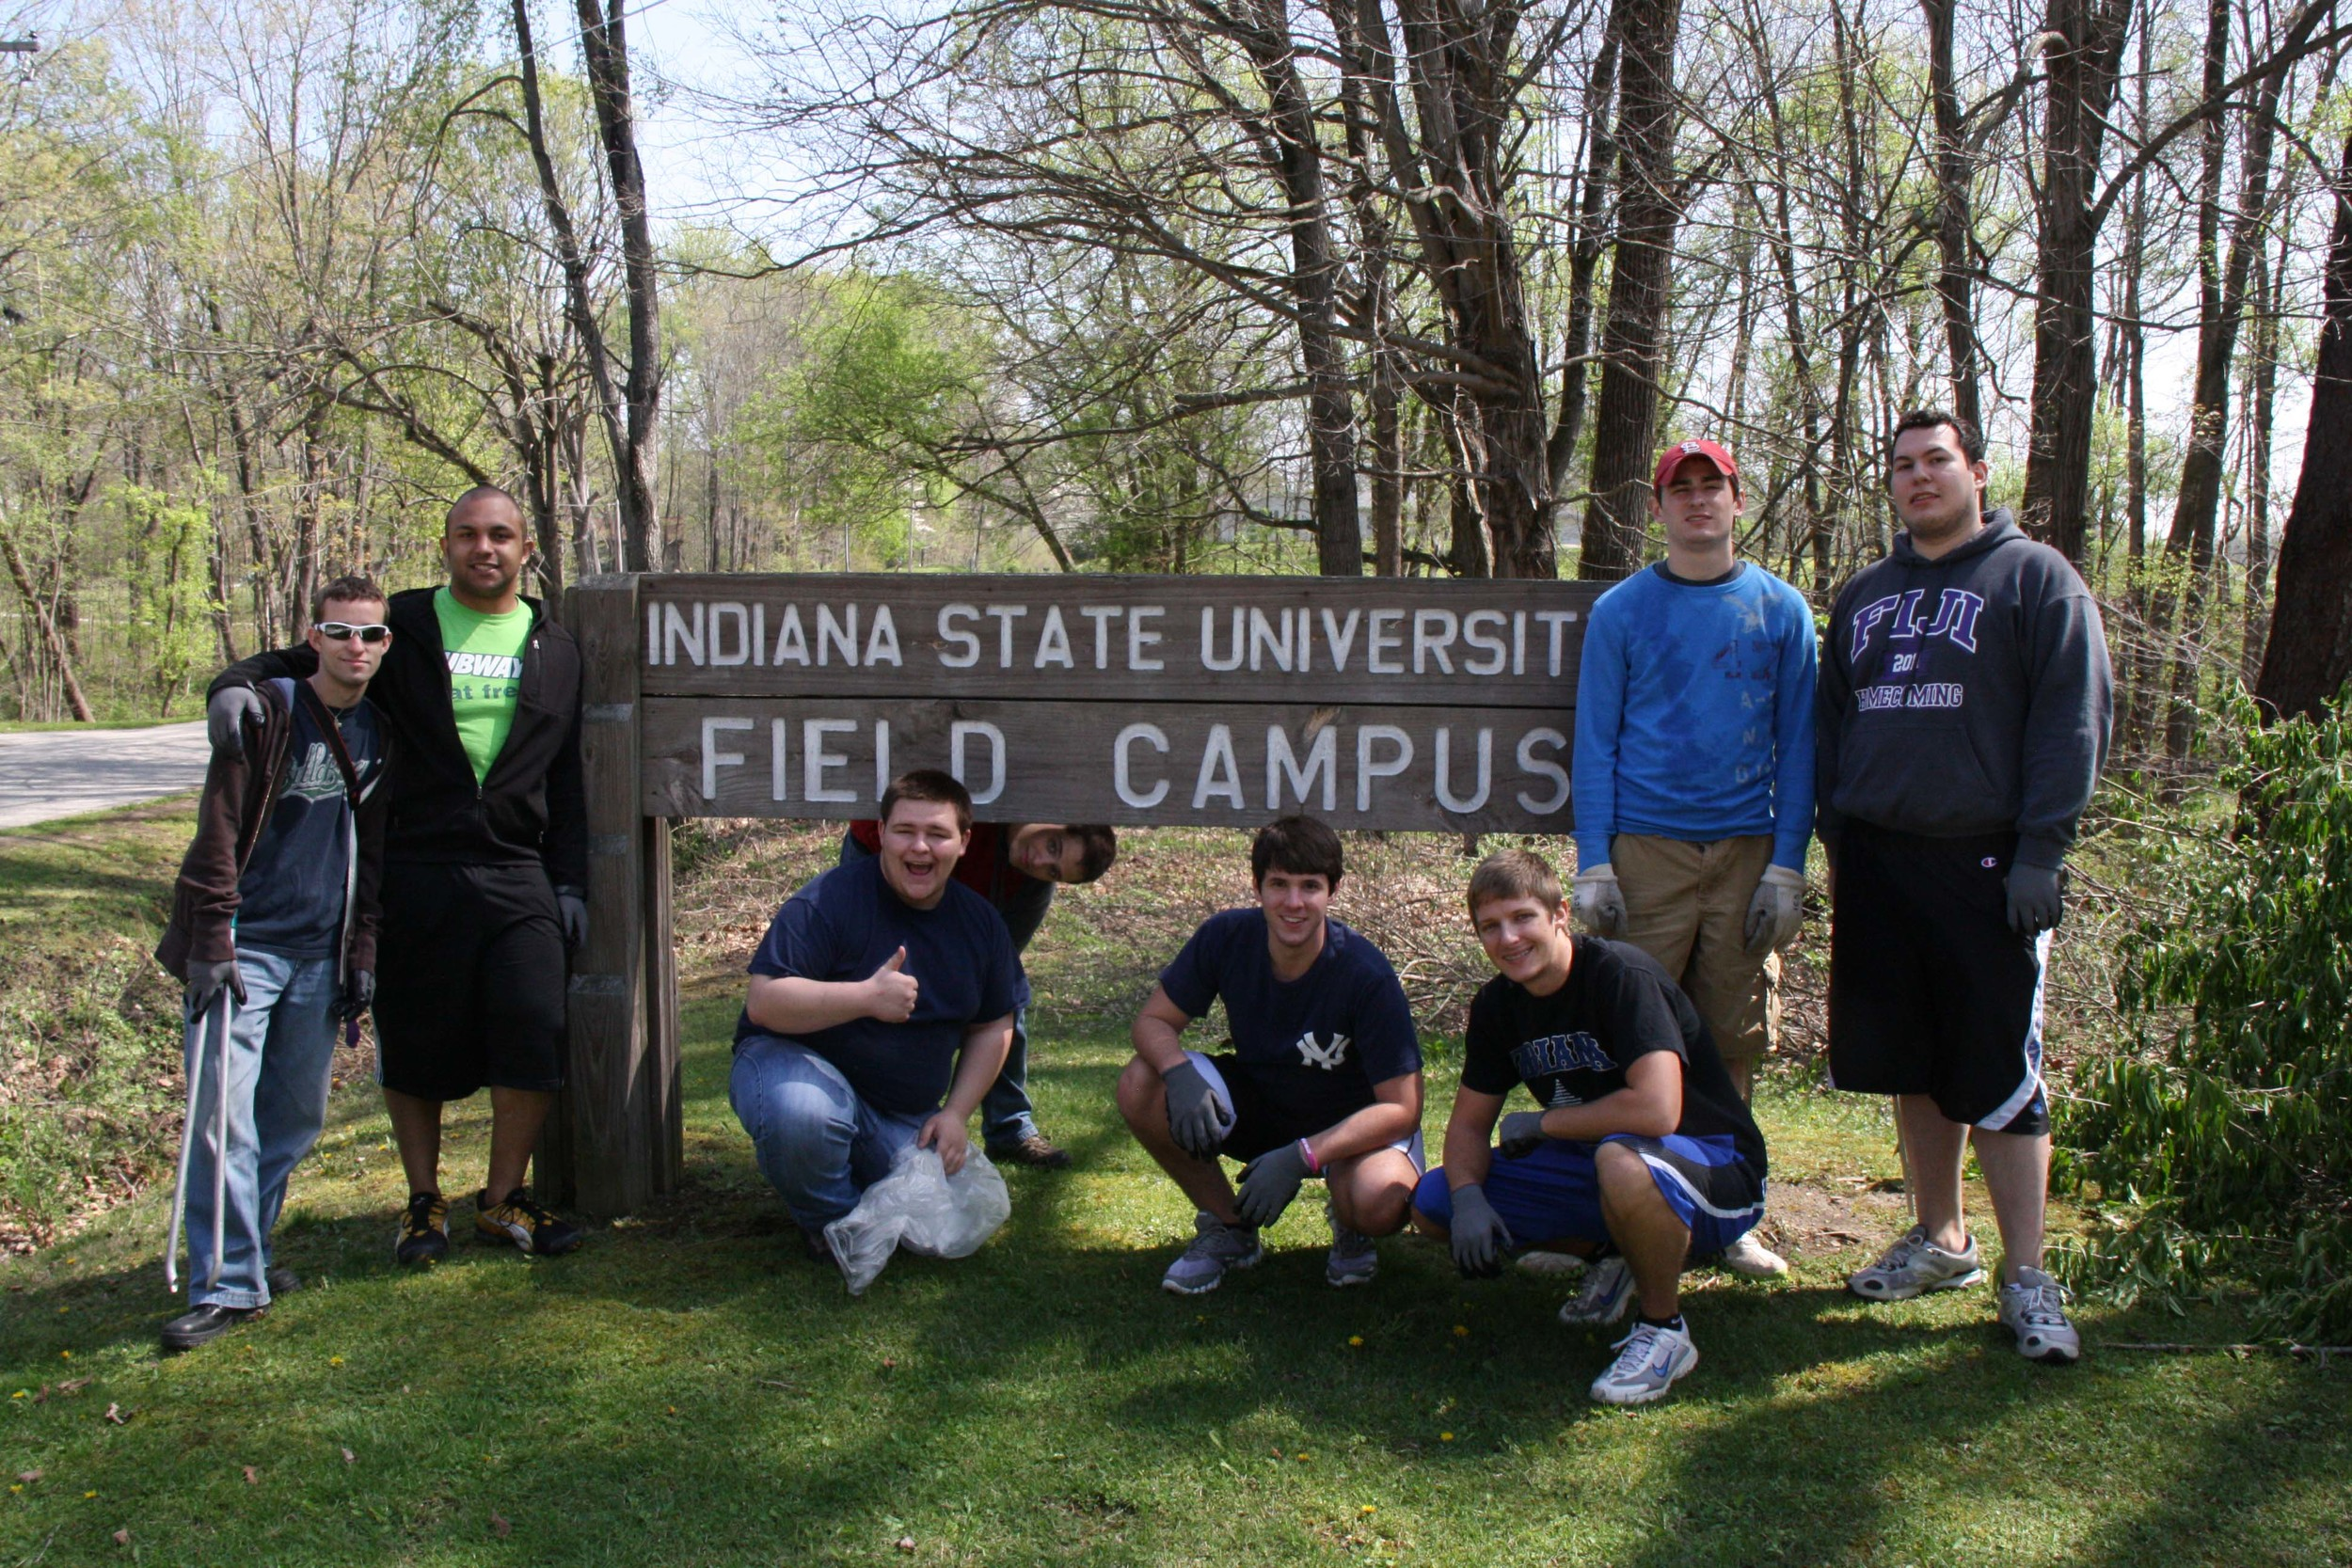 Iota Sigma at Field Campus - Service Event - March 30, 2012 (Image 002).jpg